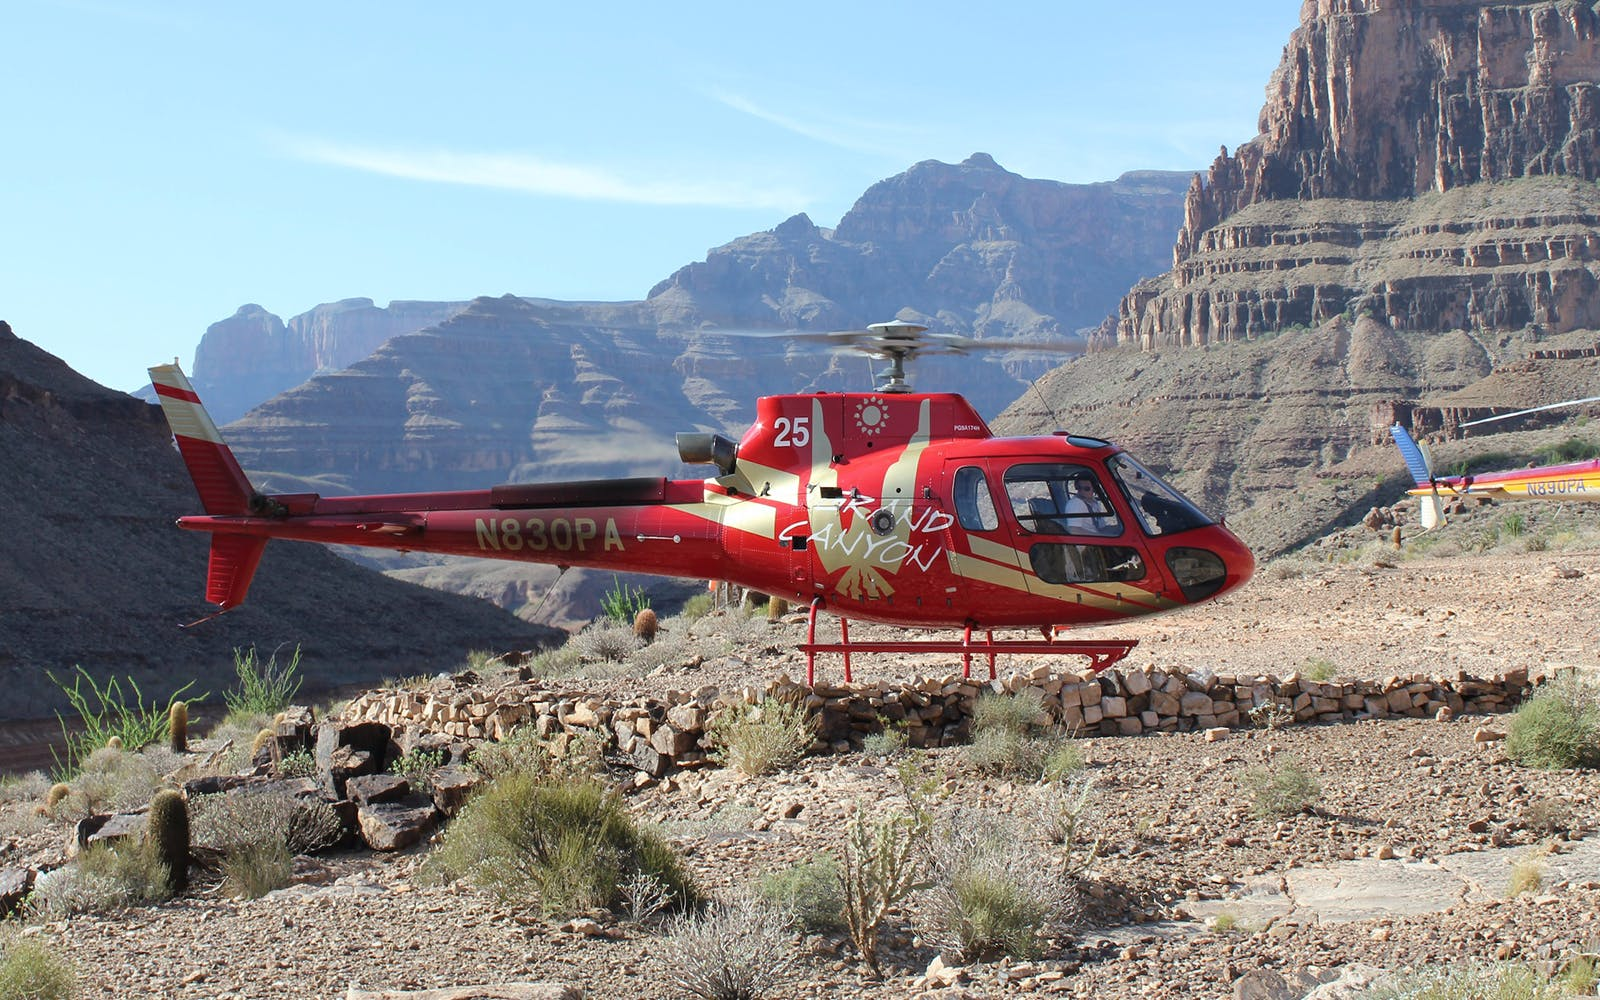 platinum hoover dam deluxe & helicopter tour-3